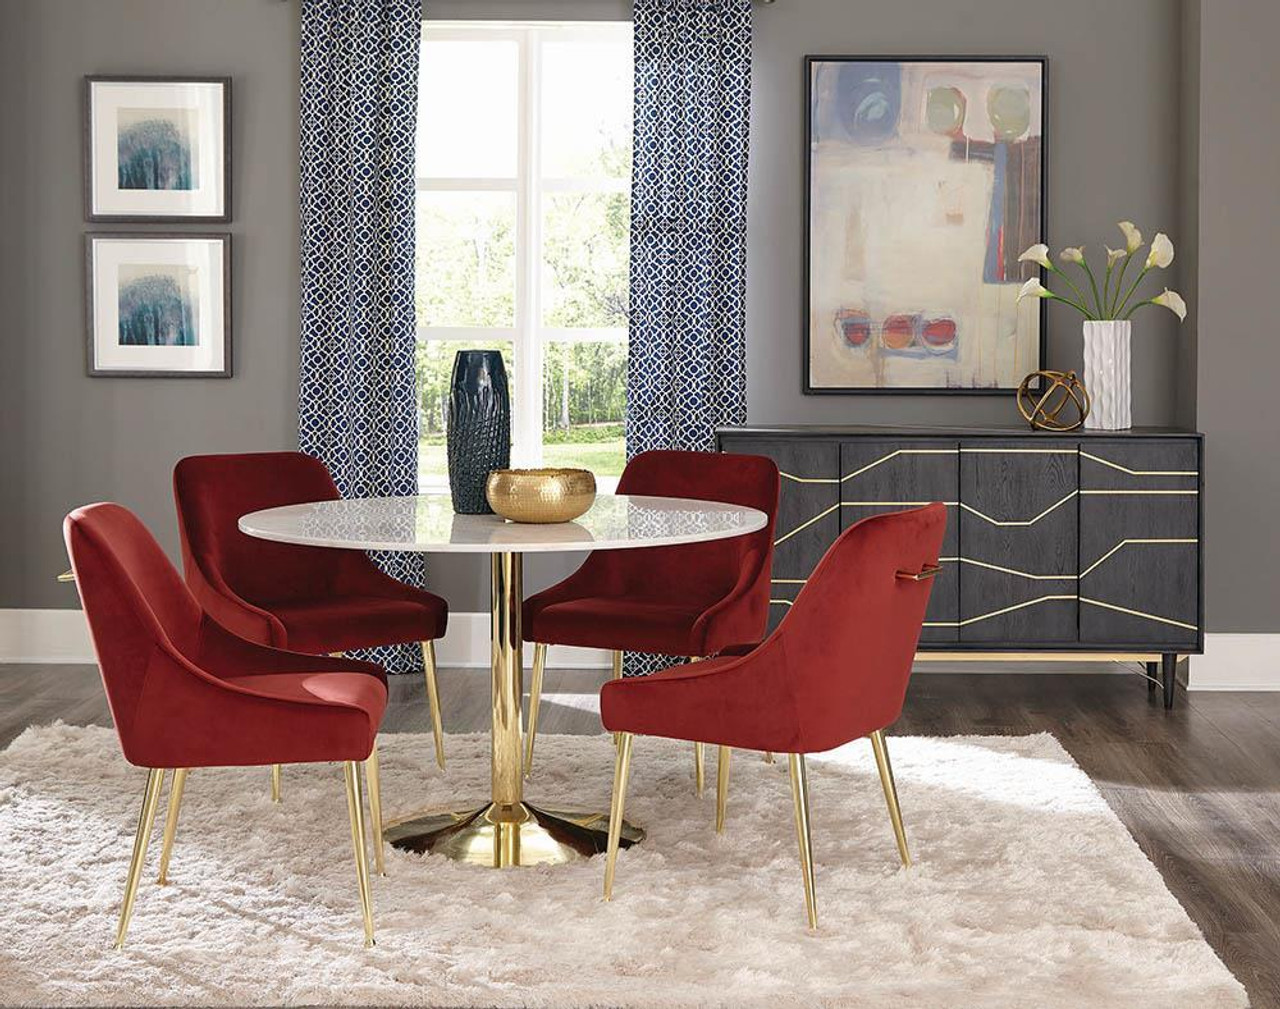 The Kella Round Dining Table Natural Marble And Gold 192061 Available At Jaxco Furniture Serving Jacksonville Fl And Surrounding Areas